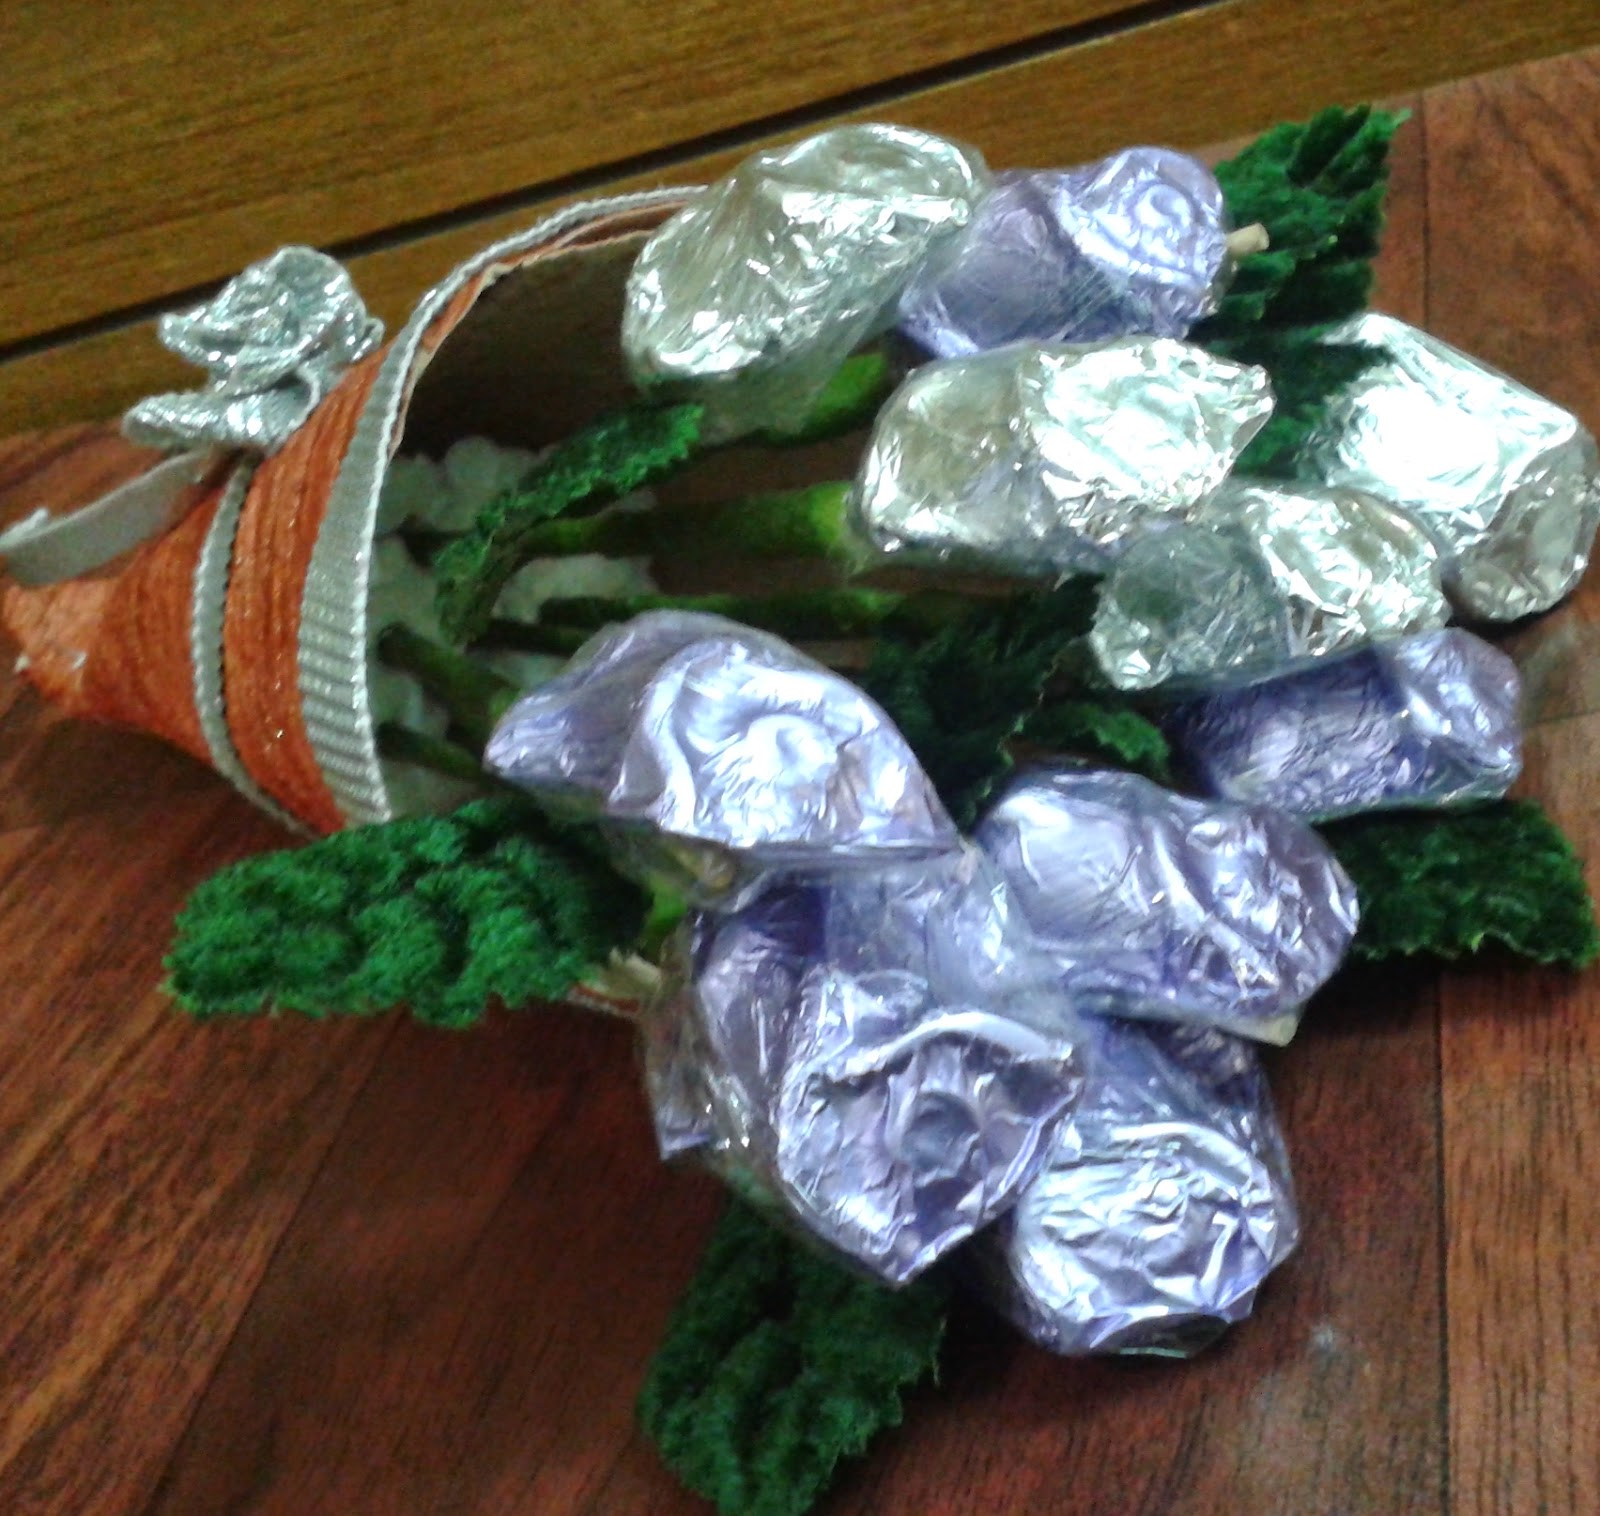 http://www.paakvidhi.com/2015/03/chocolate-bouquet.html